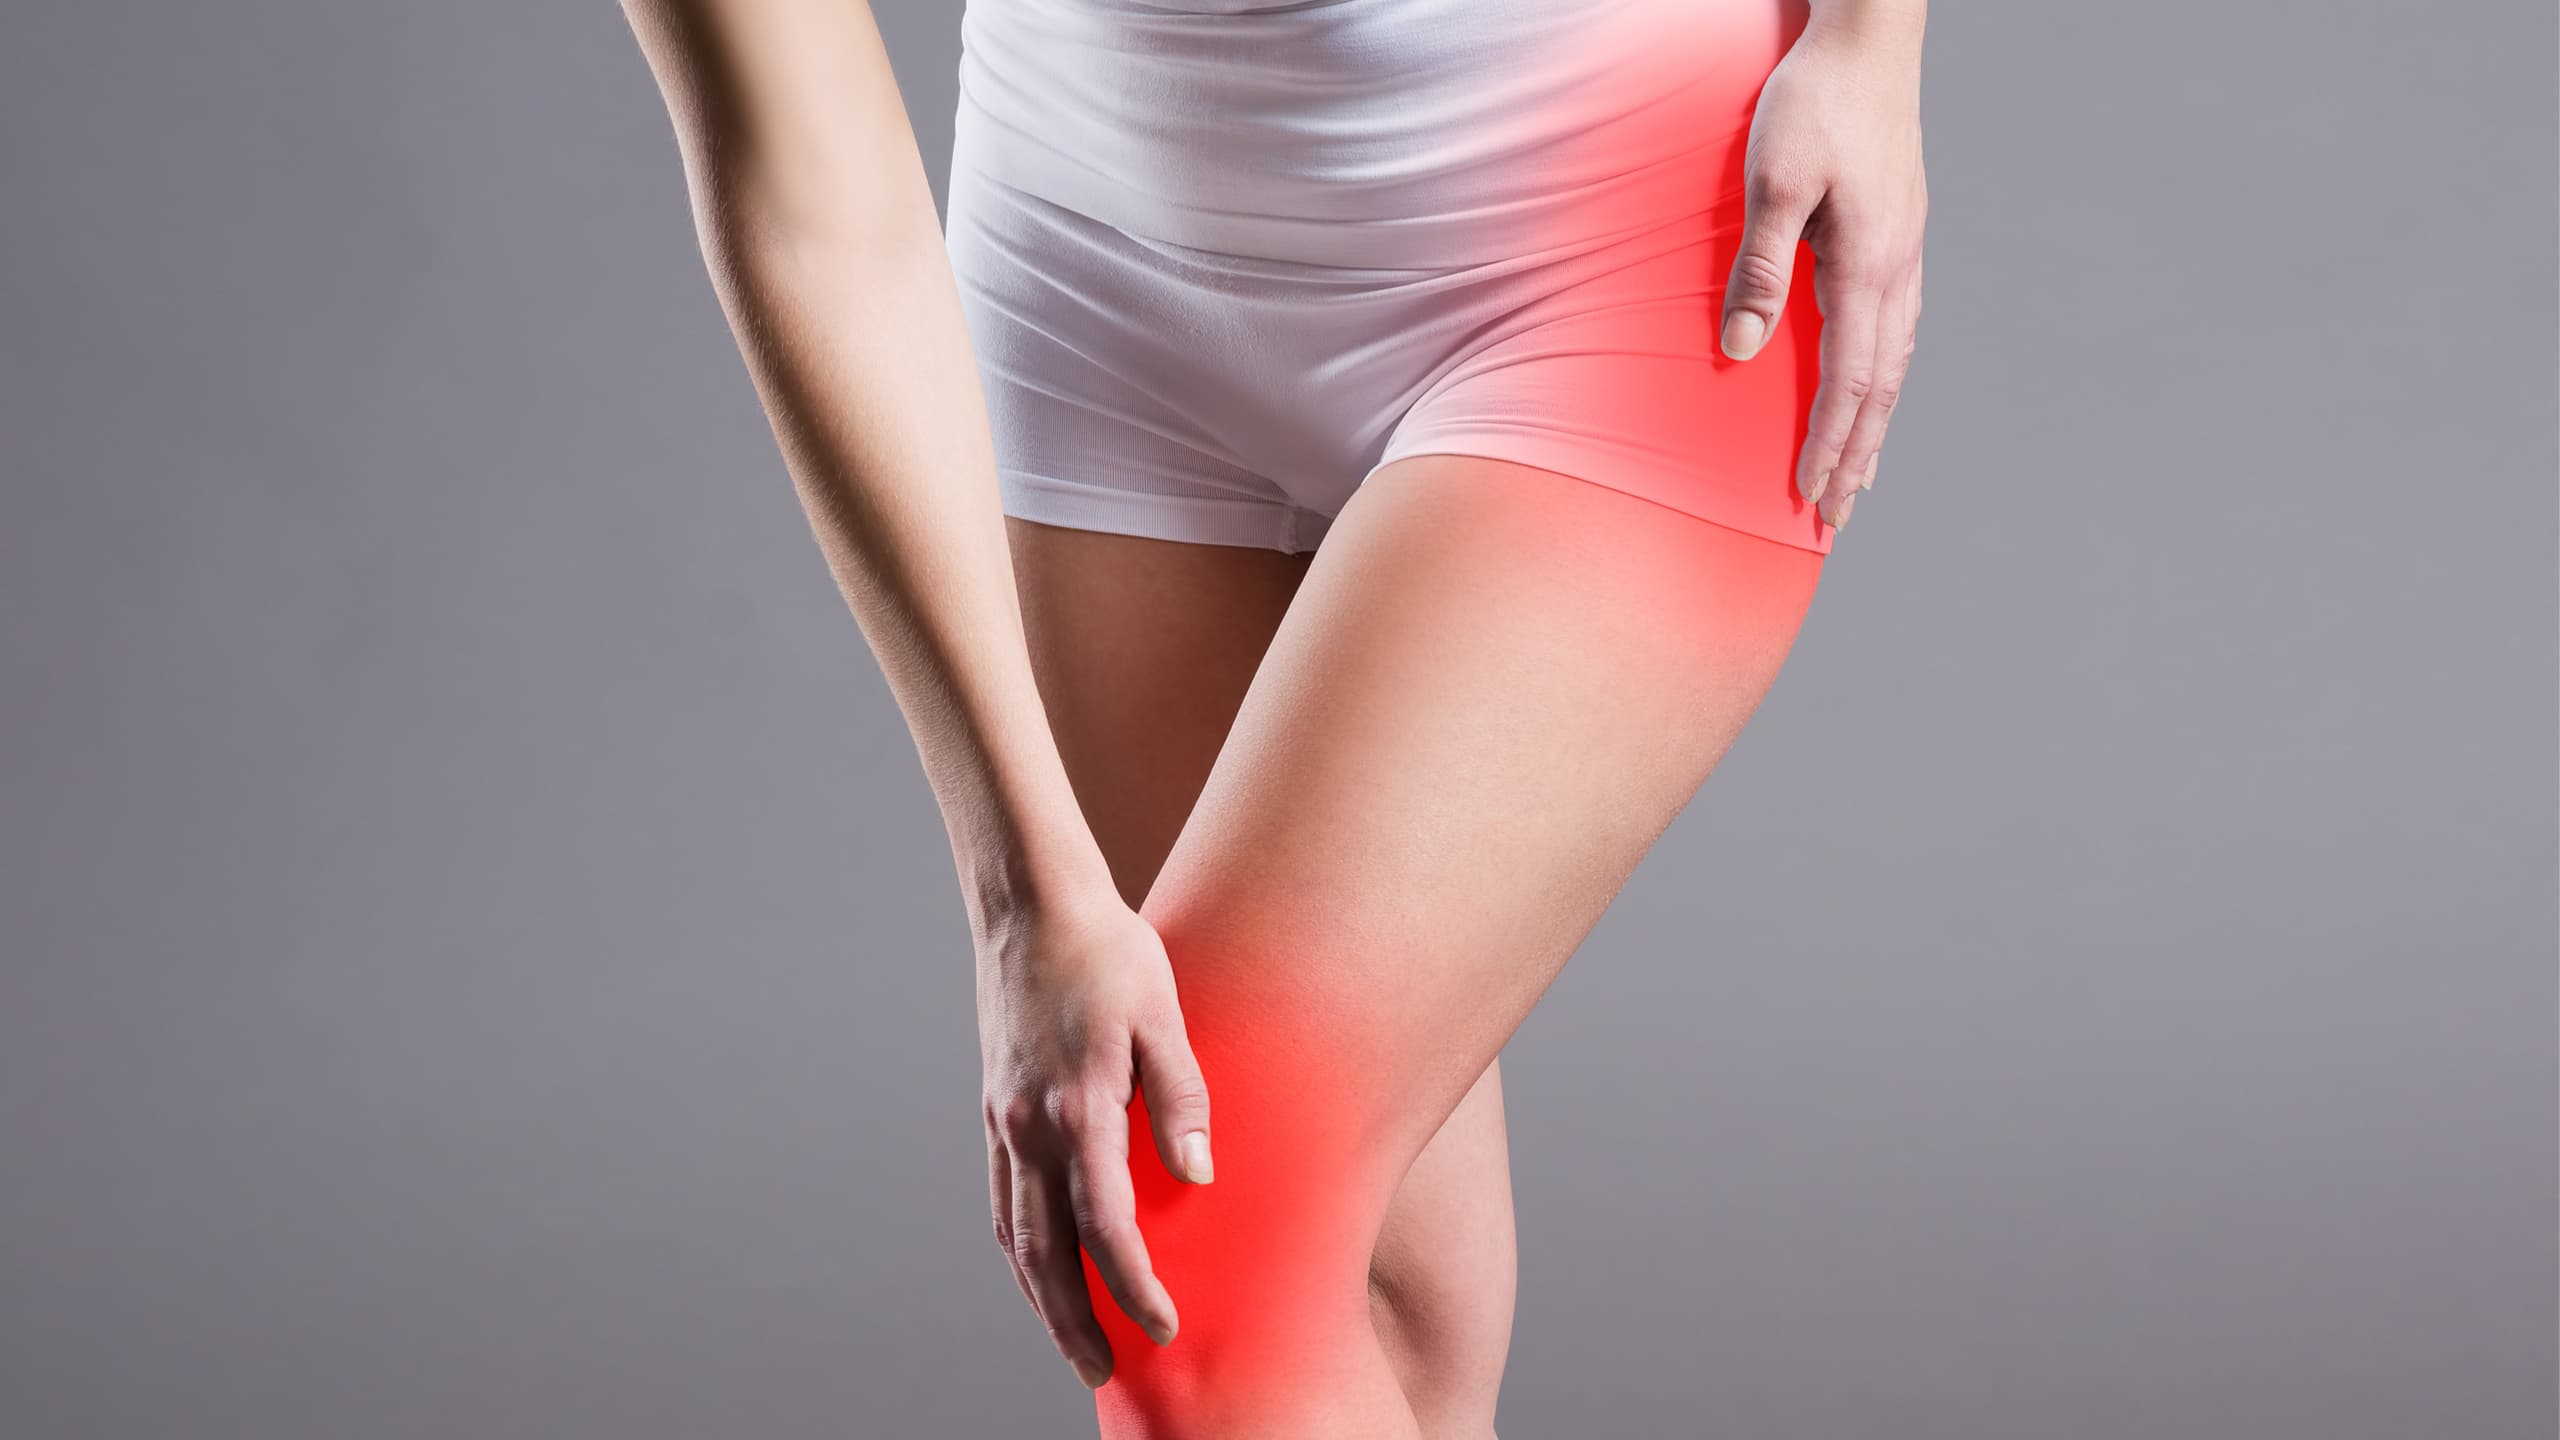 7 Self Help strategies for Painful Hip and Knee Osteoarthritis